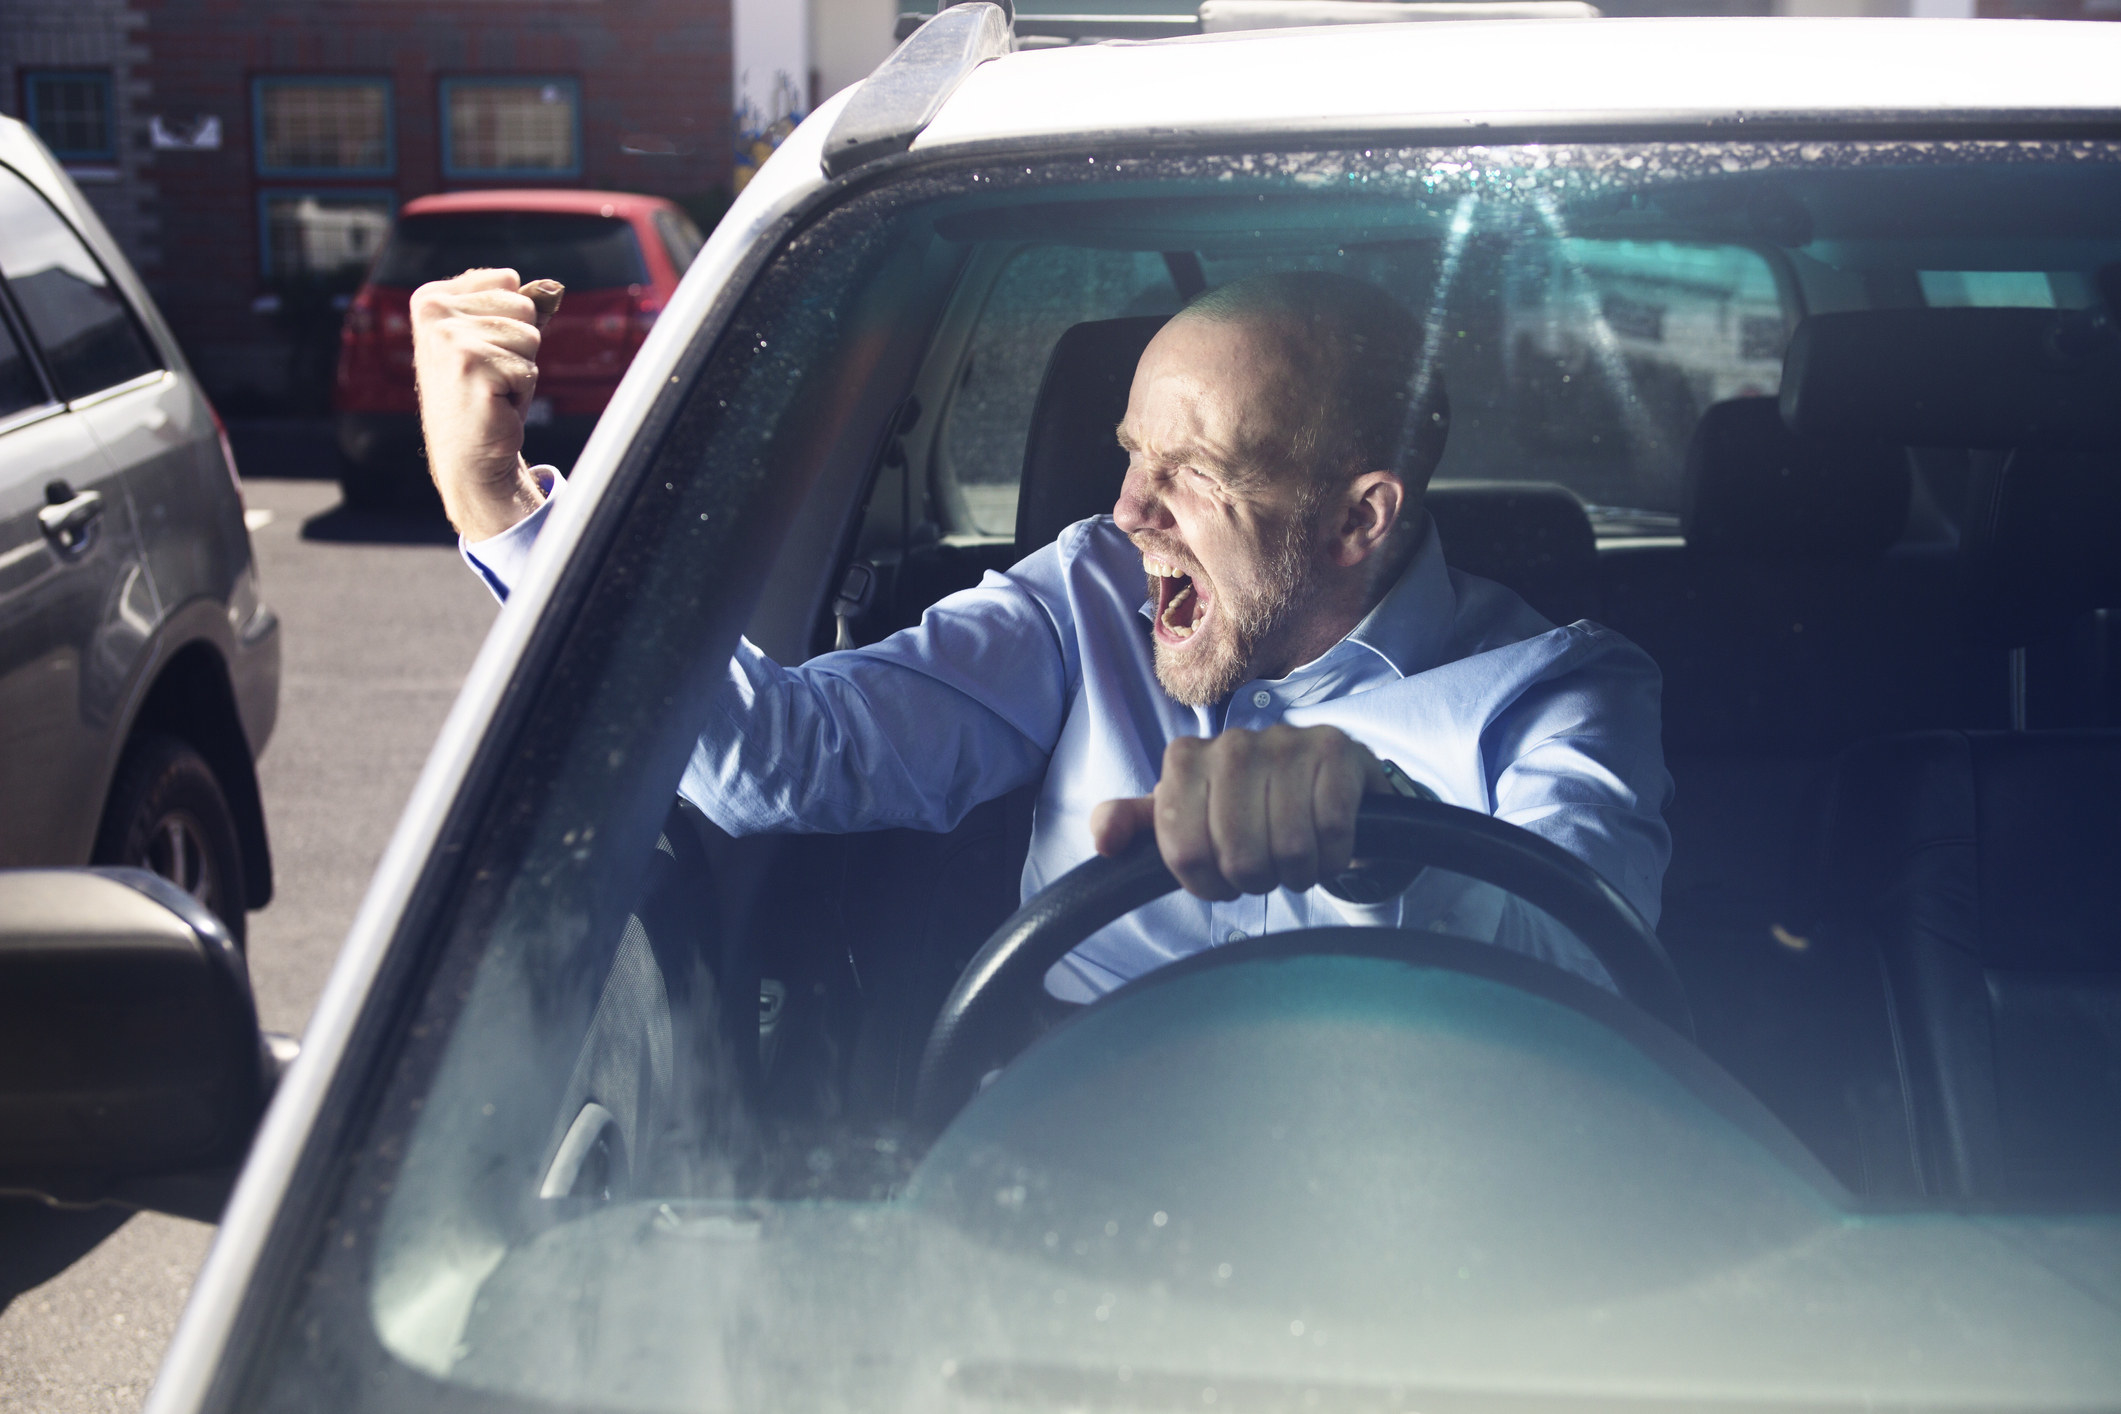 angry man driving and yelling at another car